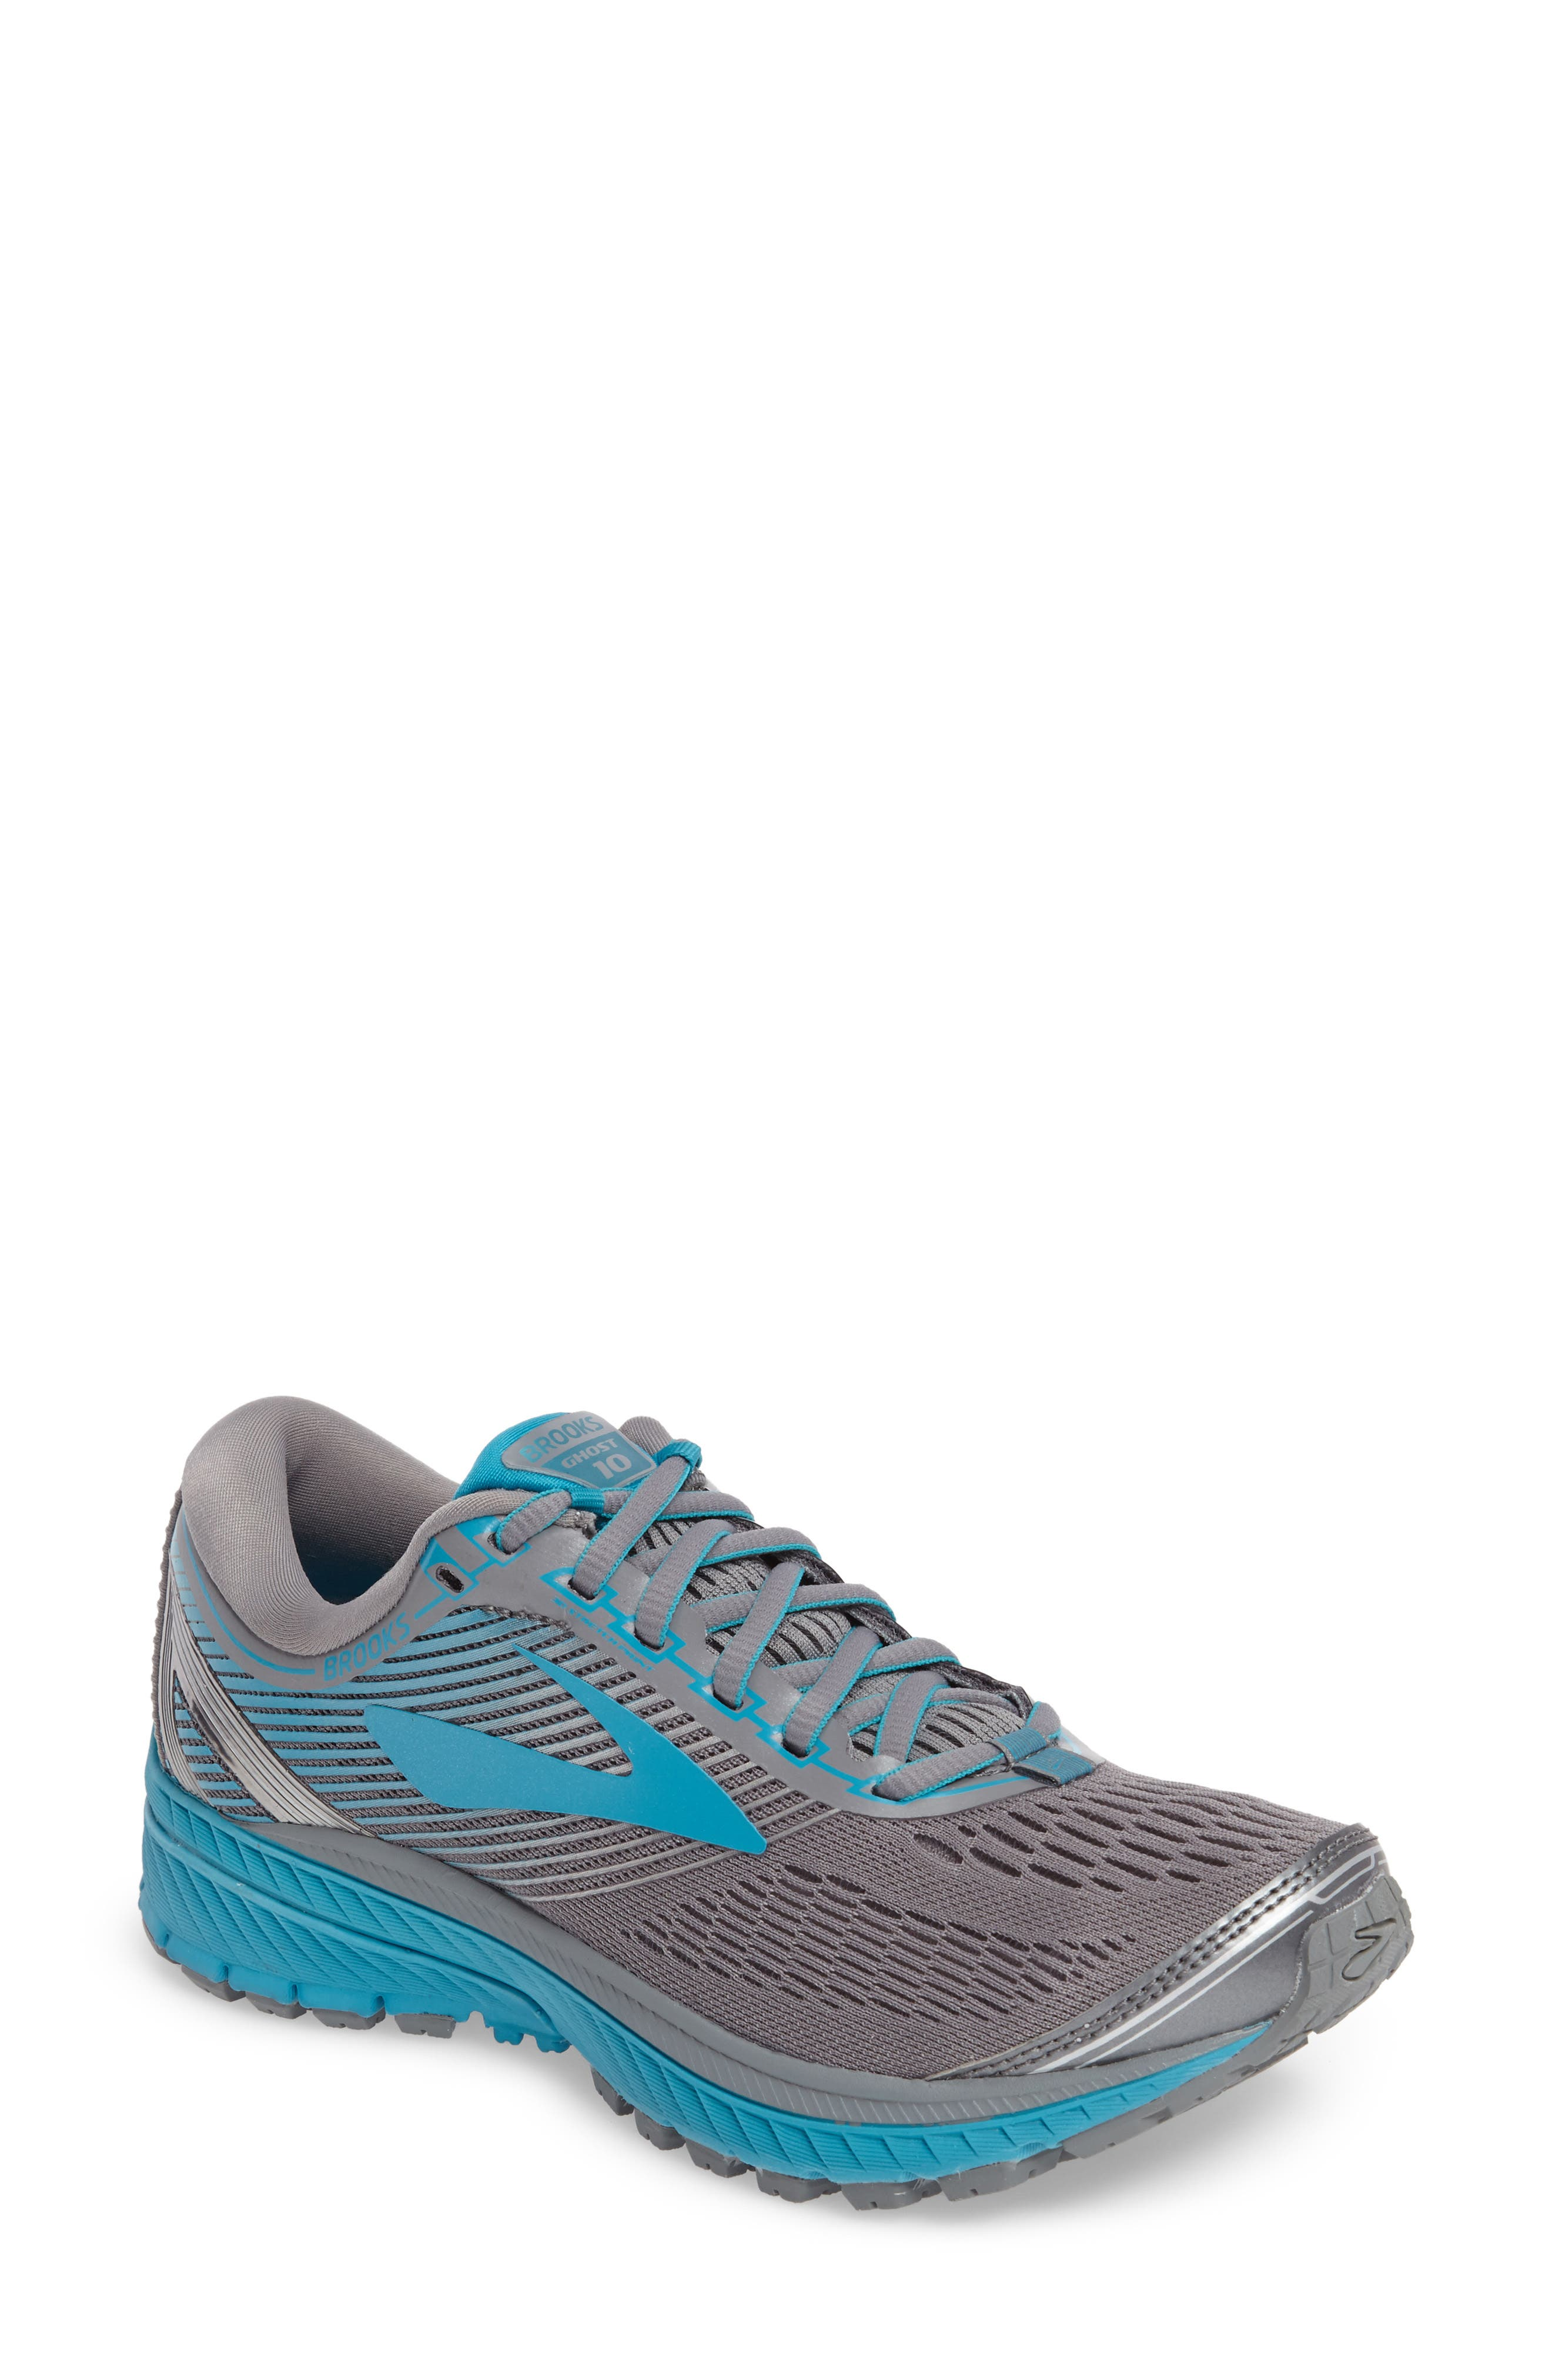 Ghost 10 Running Shoe,                         Main,                         color, Primer Grey/ Teal/ Silver